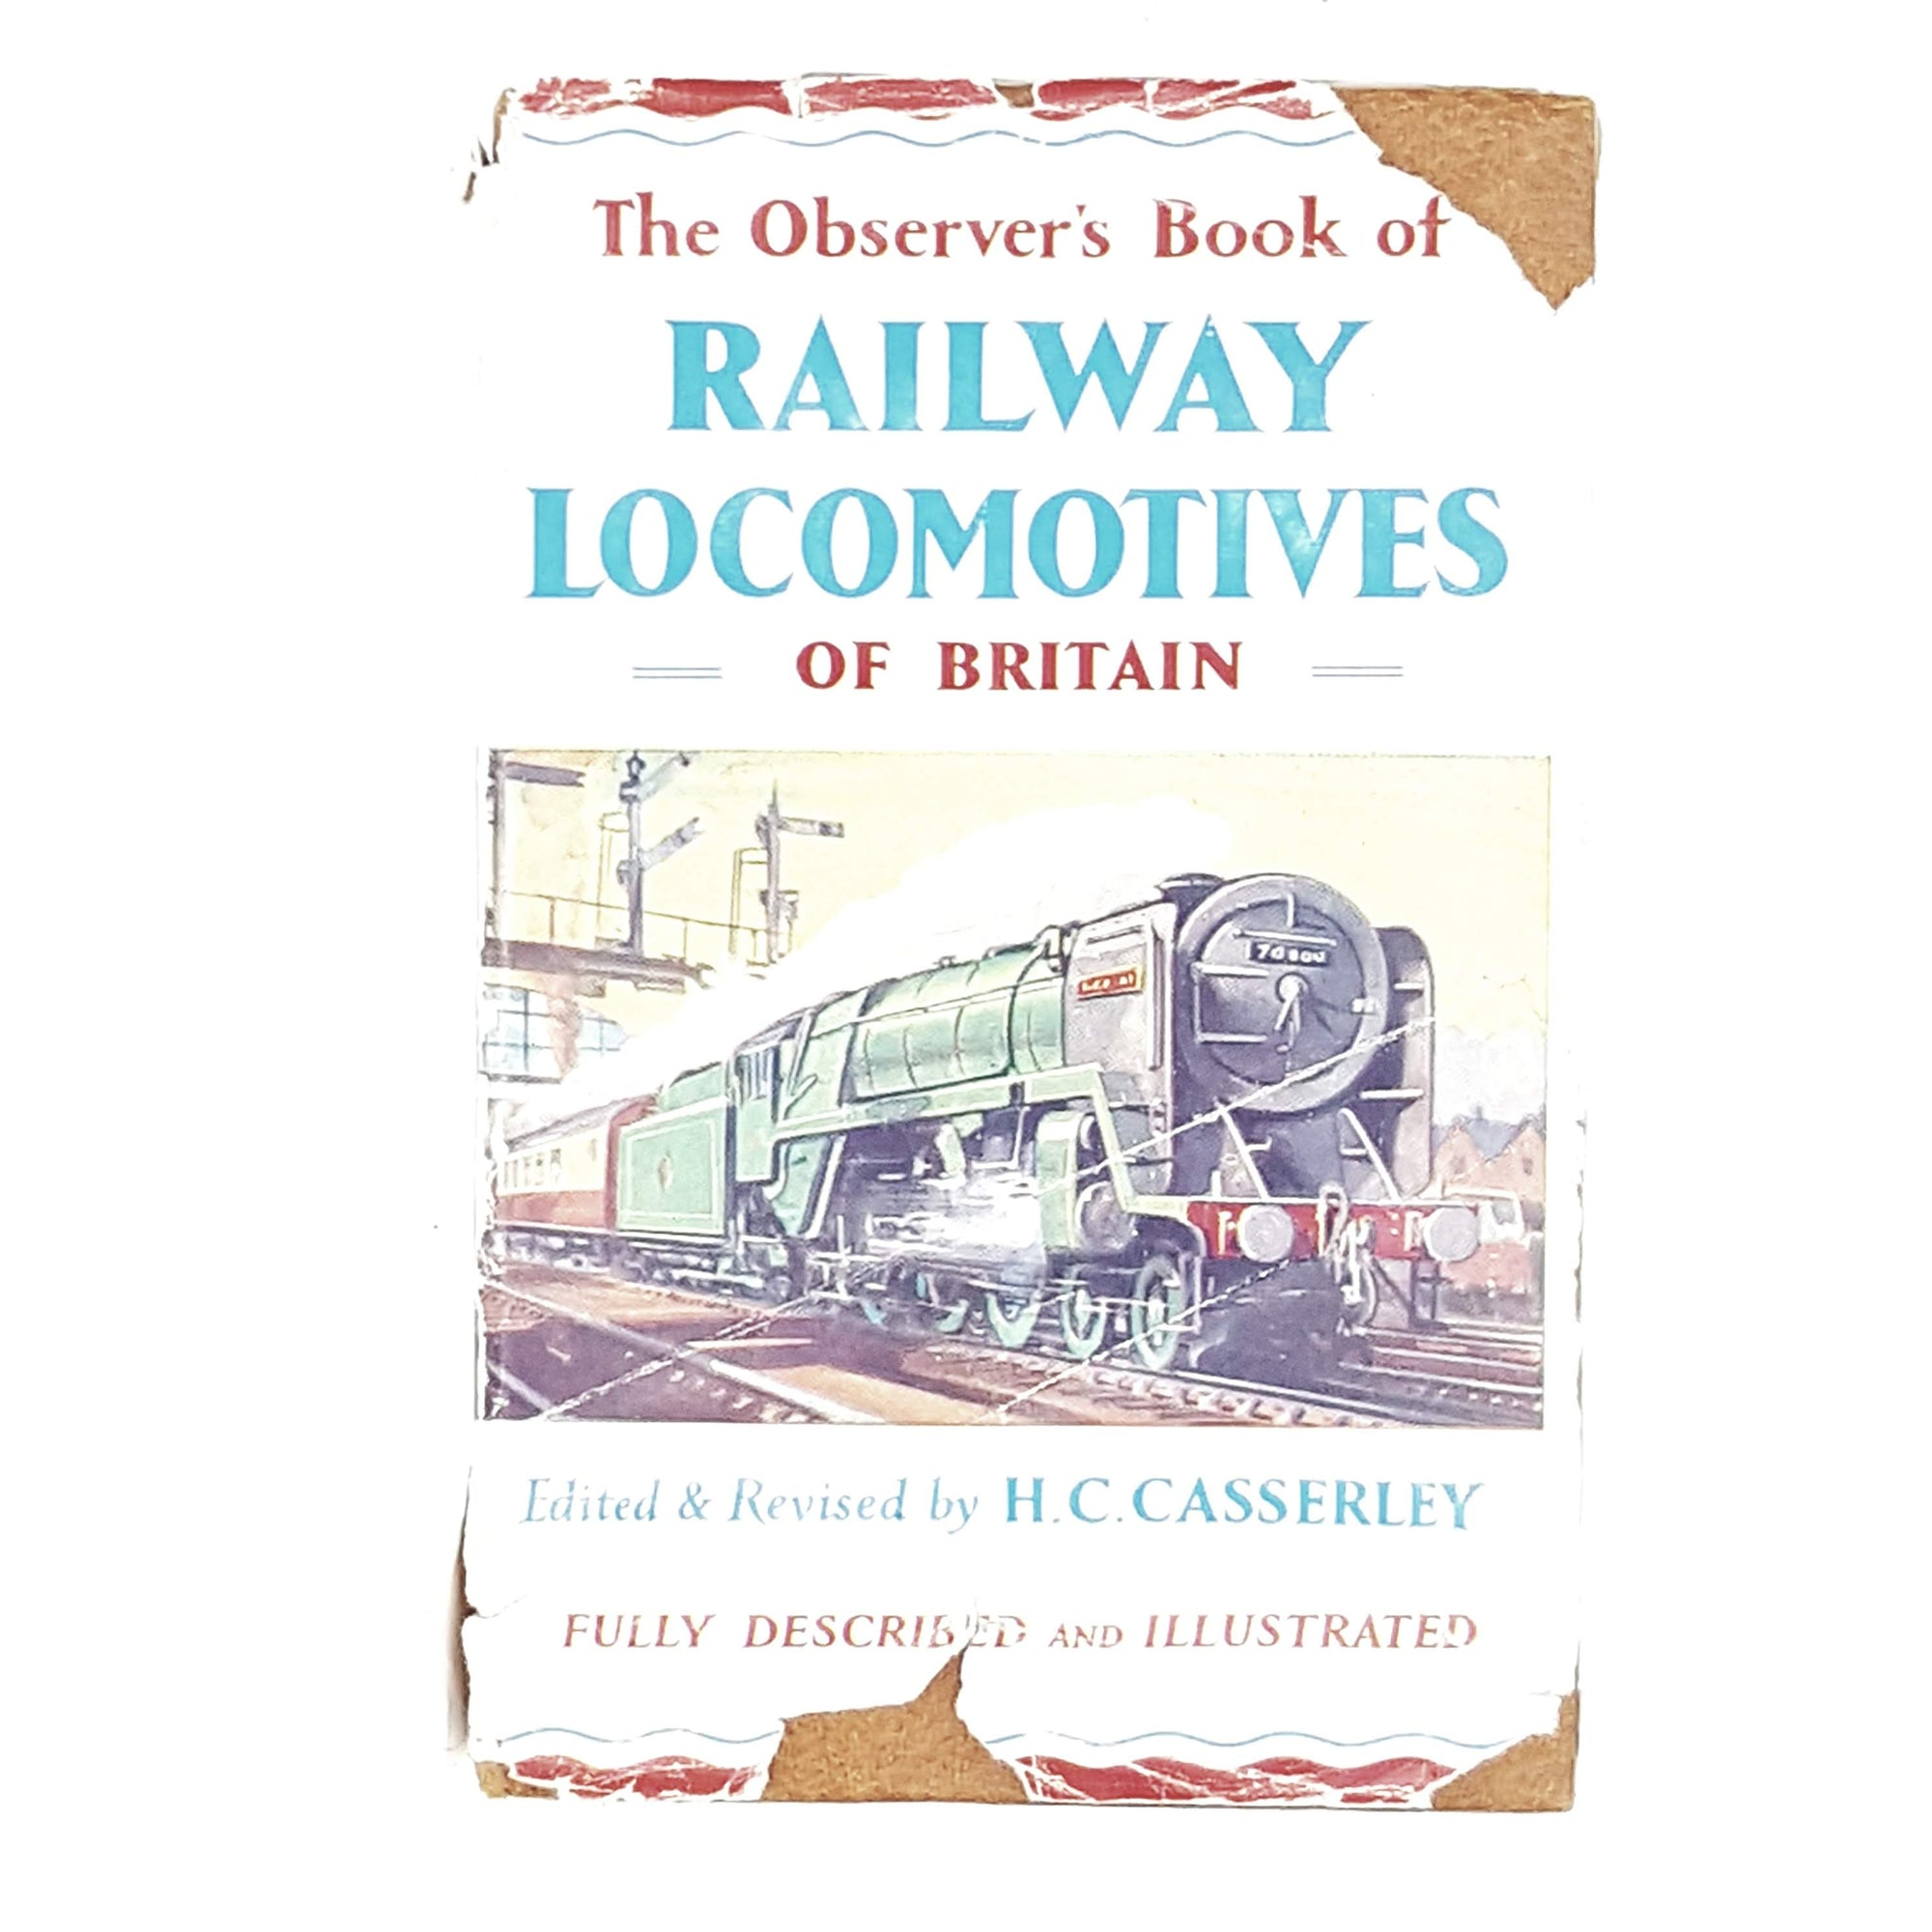 second-edition-observers-book-of-railway-locomotives-of-britain-1958-country-house-library